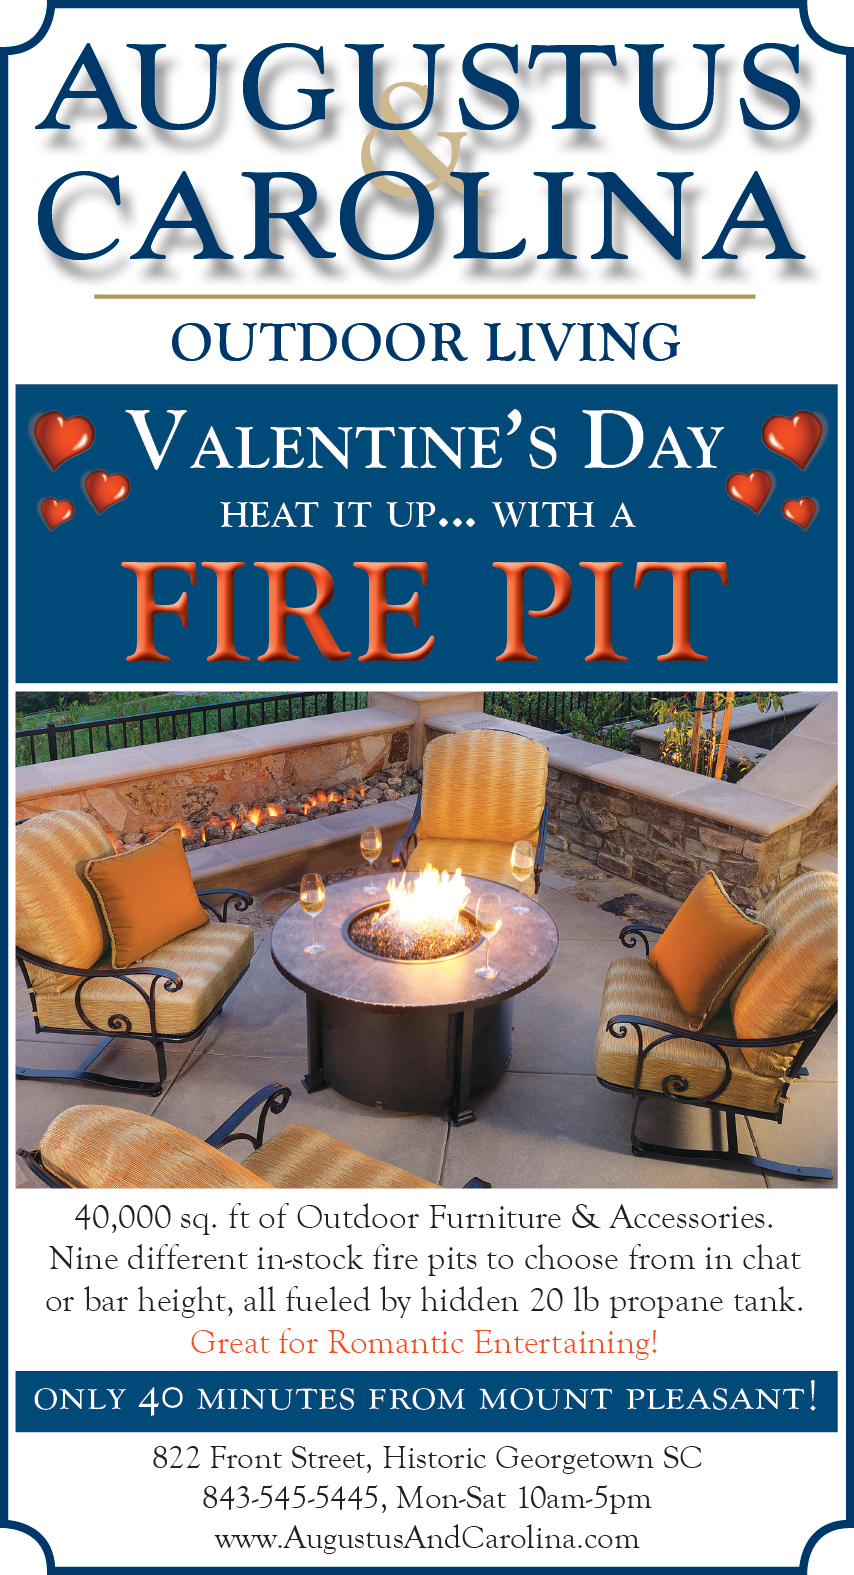 Fire Pit Ad Valentines Day P&C.jpg